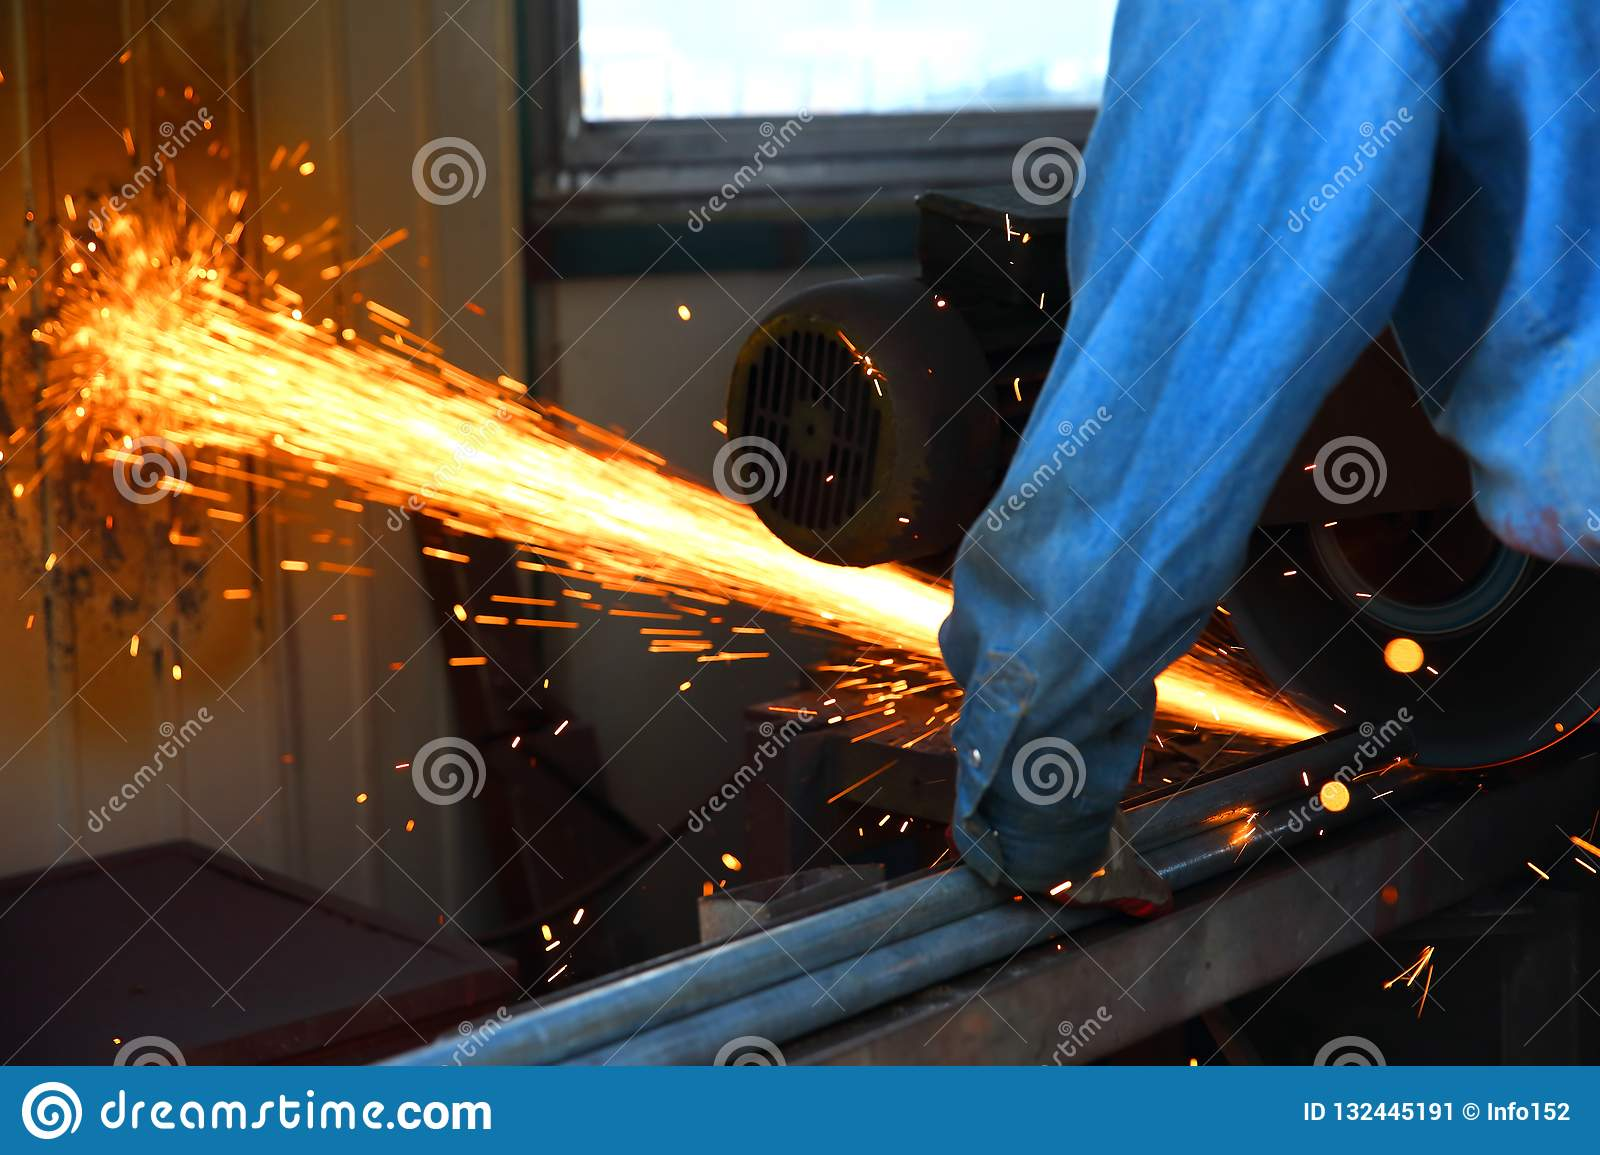 Cutting steel with a stationary grinder.